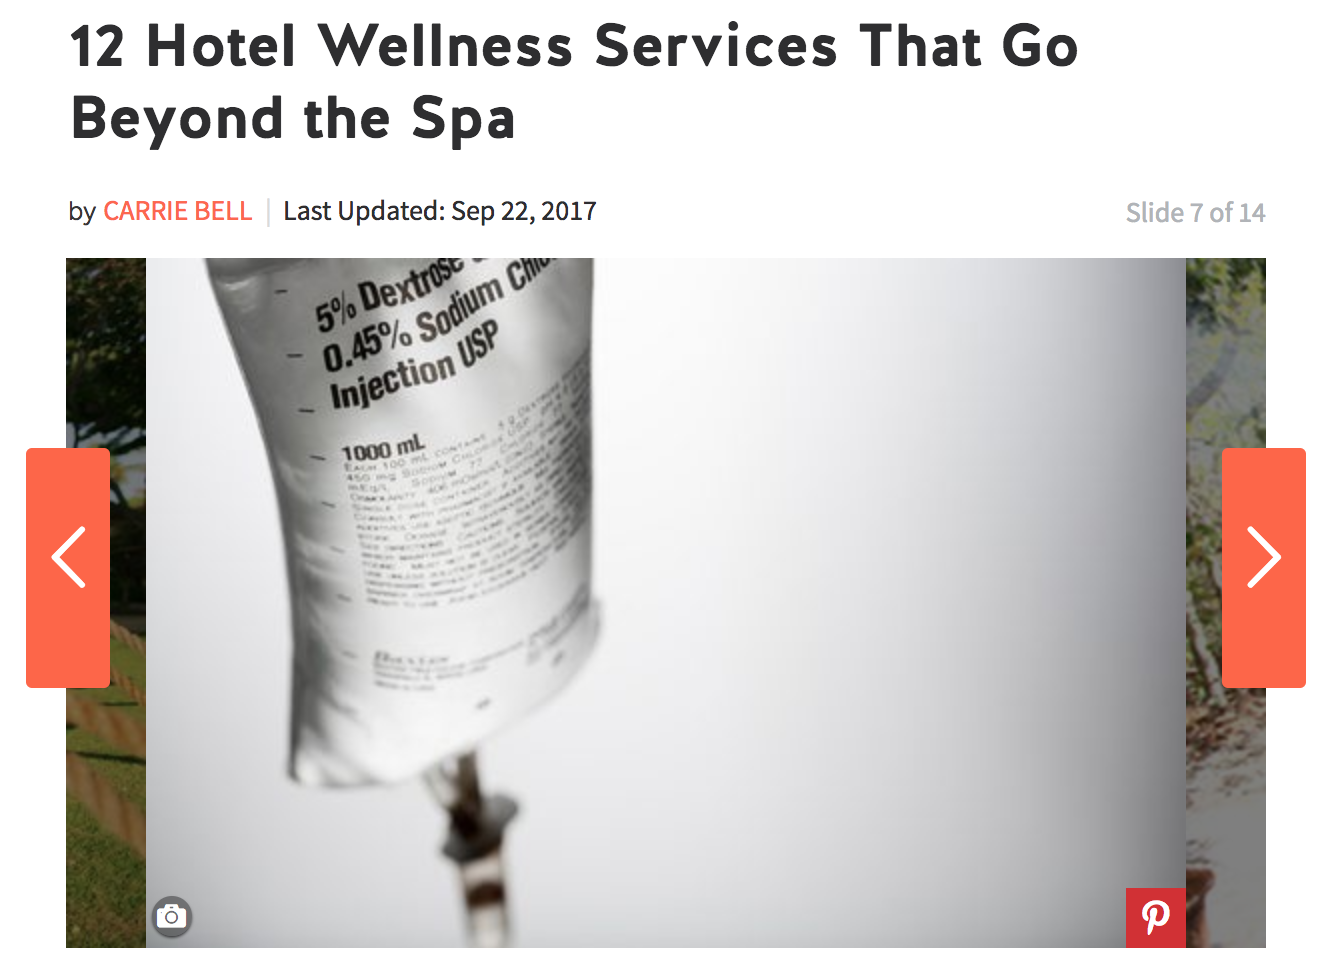 Click to read more about how our mobile services are being used as a wellness treatment, even by hotel guests.